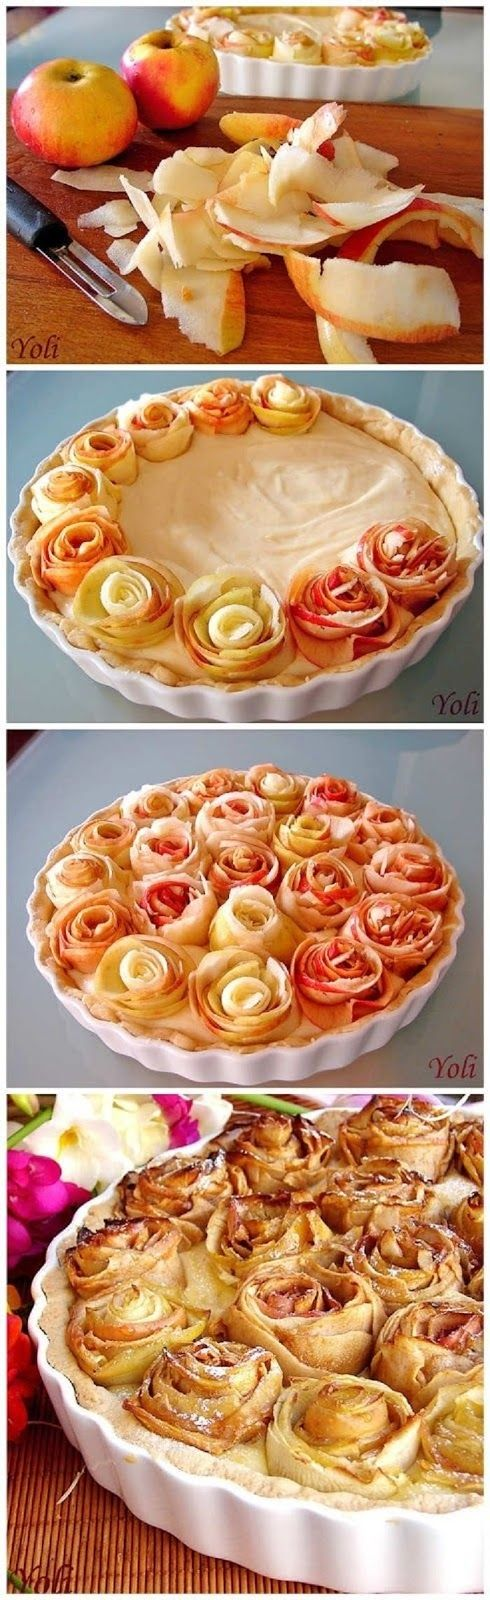 DIY Flower Apple Pie food diy party ideas diy food diy recipes diy baking diy desert diy pie diy food art diy apple pie diy stuffed pie: